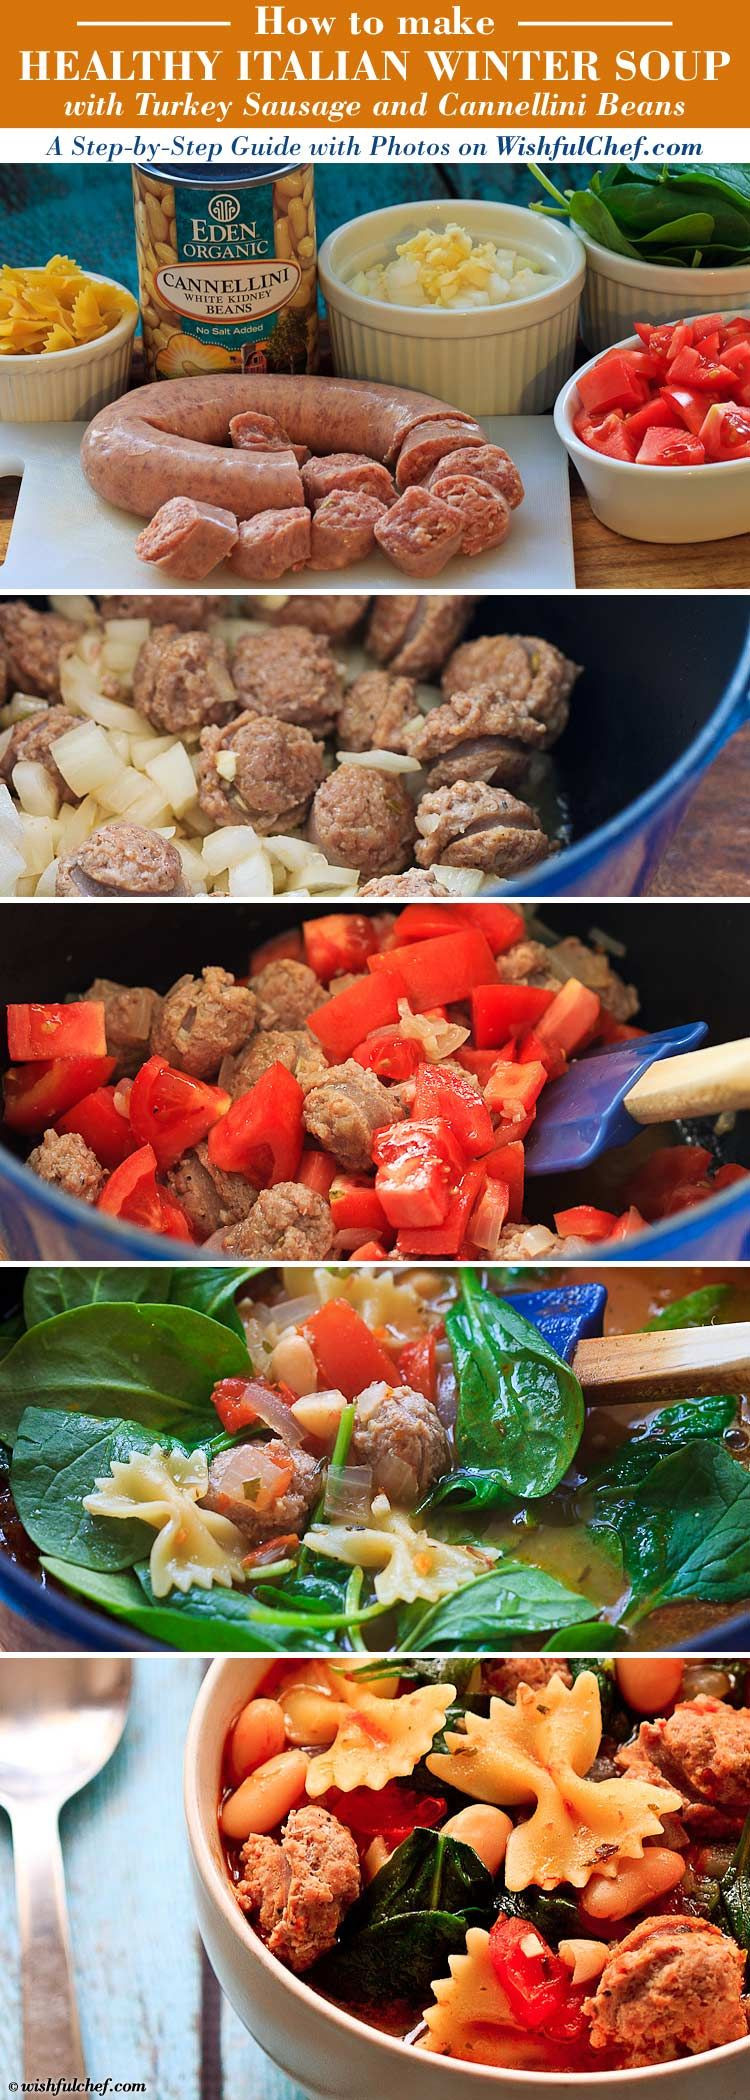 Italian Sausage Recipes Healthy  Healthy Italian Winter Soup with Turkey Sausage